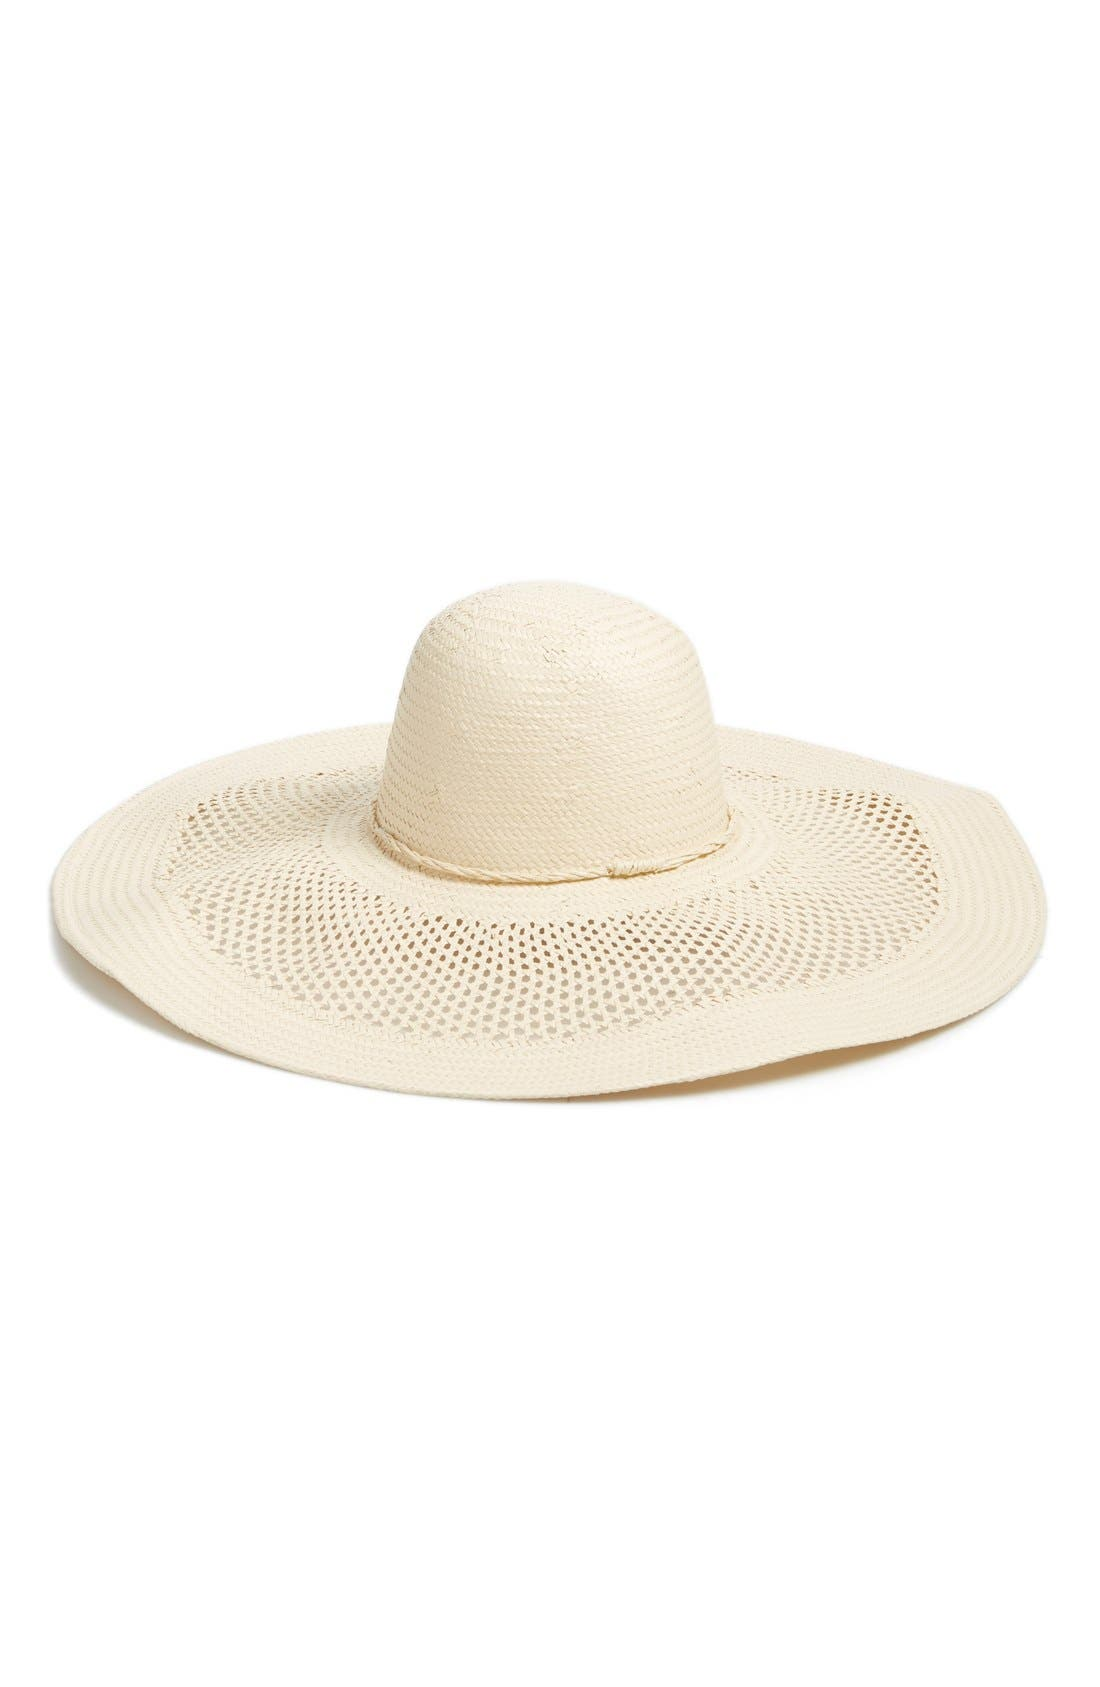 Open Weave Floppy Straw Hat,                         Main,                         color, Ivory Vanilla